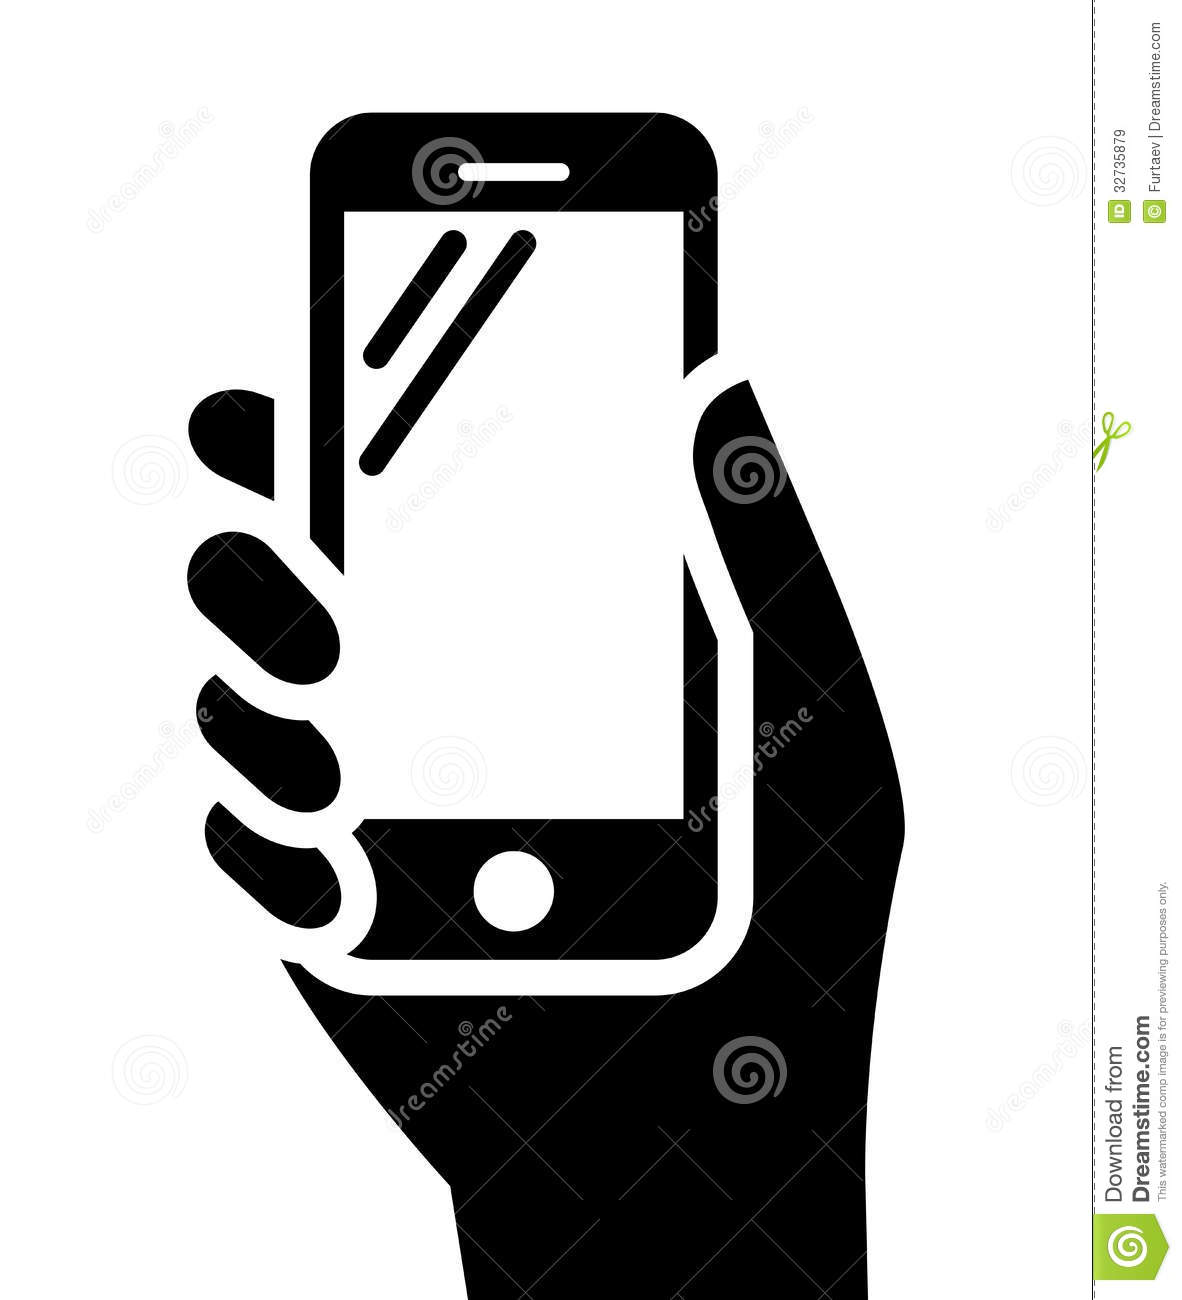 Phone in hand clipart png library download Phone in hand sign | Clipart Panda - Free Clipart Images png library download